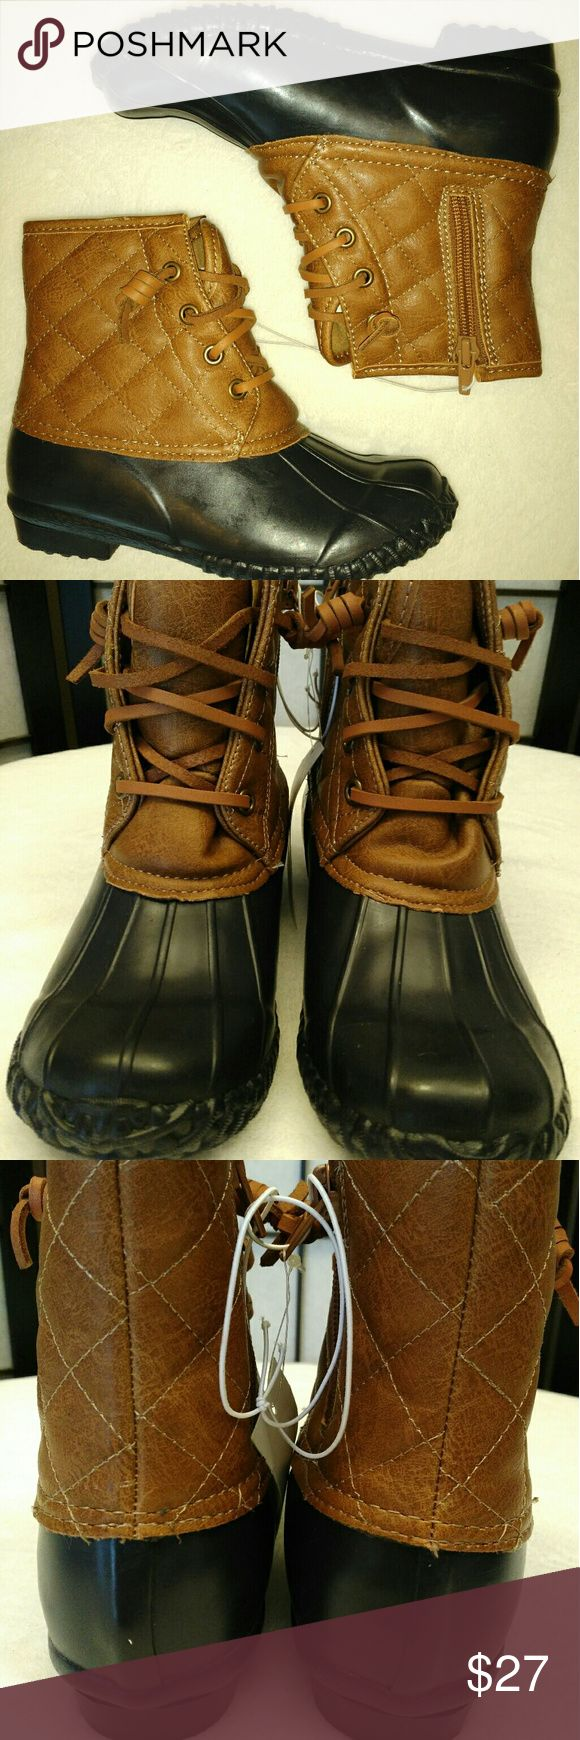 NWT Girls Wellie Jellie Duck Boots New and super cute! Without box. Enjoy! :) Navy & brown. Stevies Shoes Rain & Snow Boots